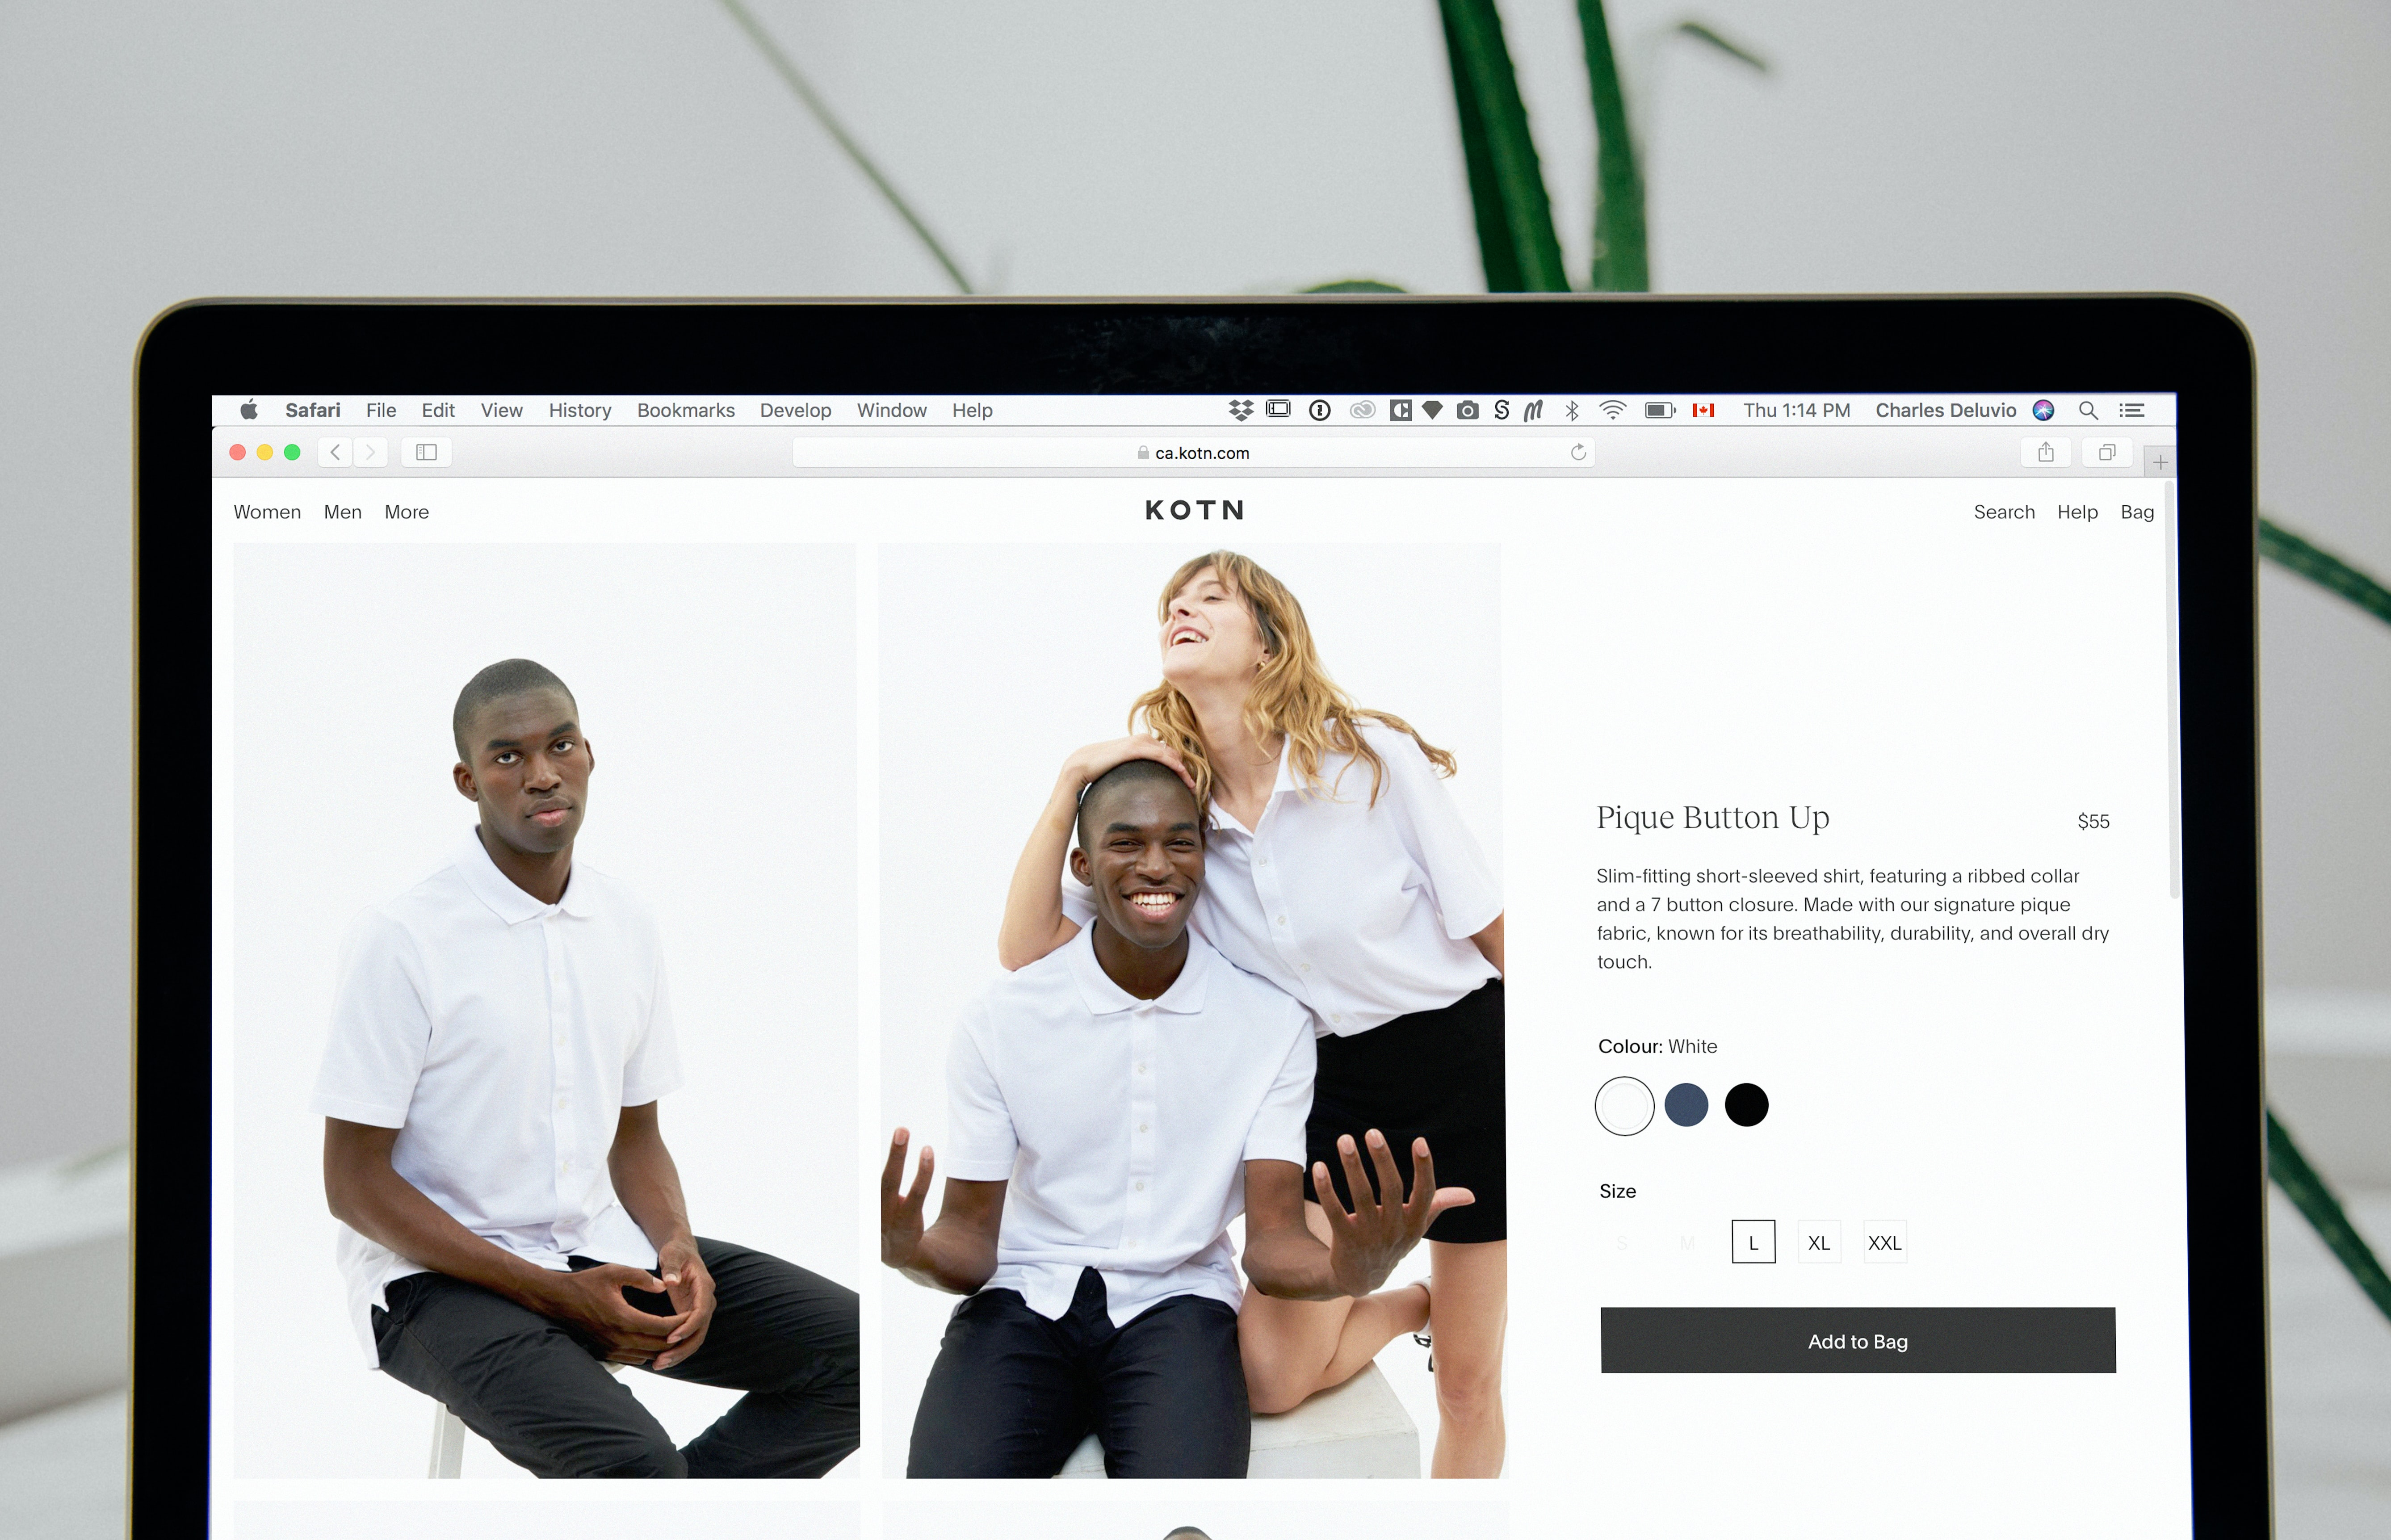 Product page content